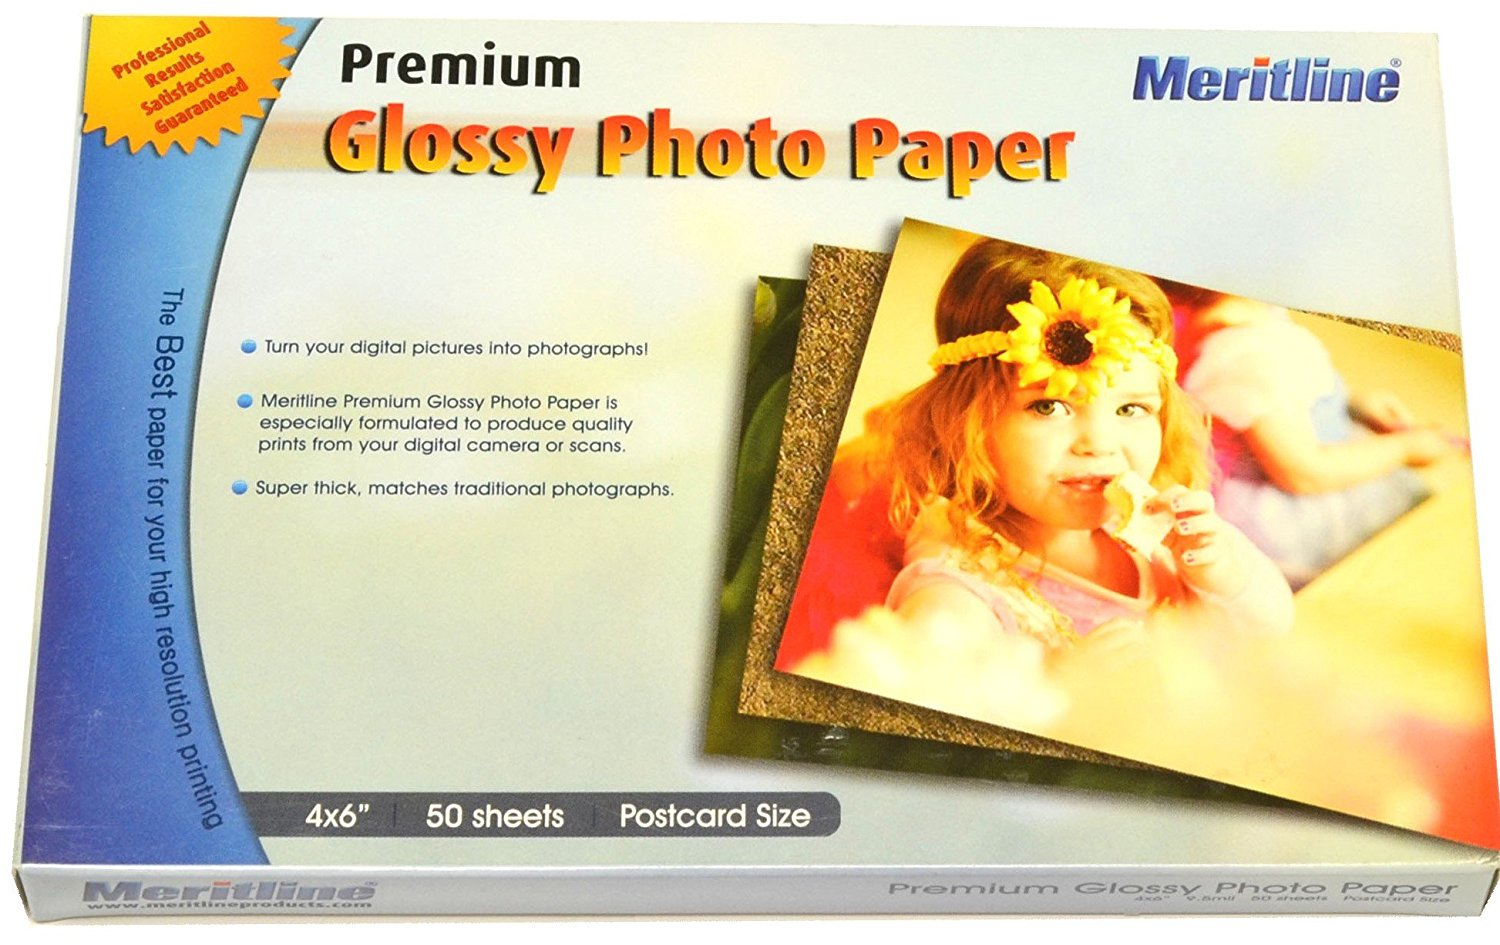 4x6 Glossy Photo Paper (Pack of 50 Sheets)